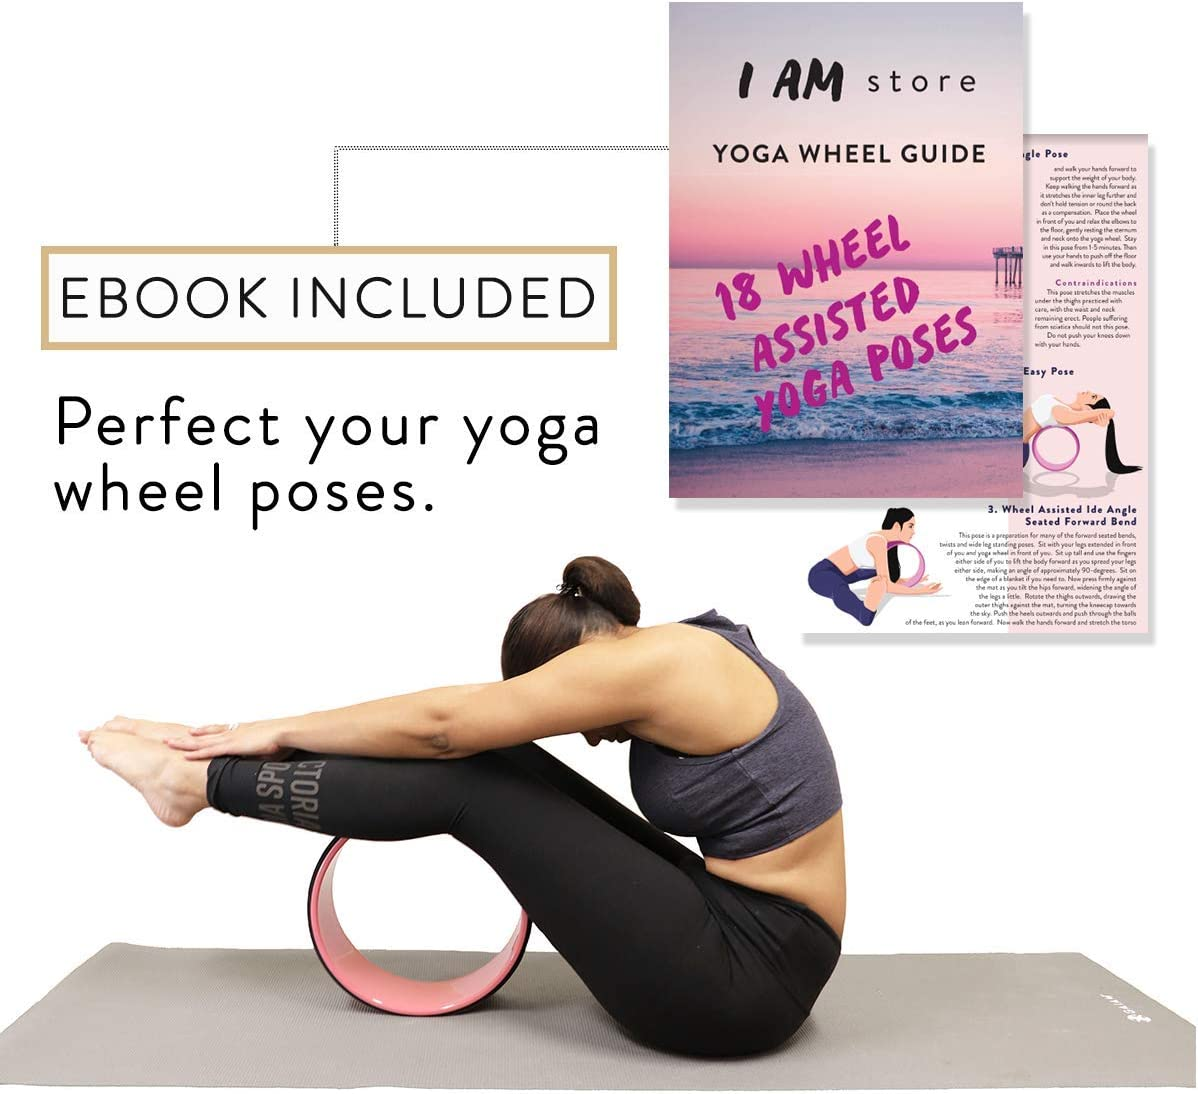 Amazon.com: I AM Store - Rueda de yoga: Sports & Outdoors